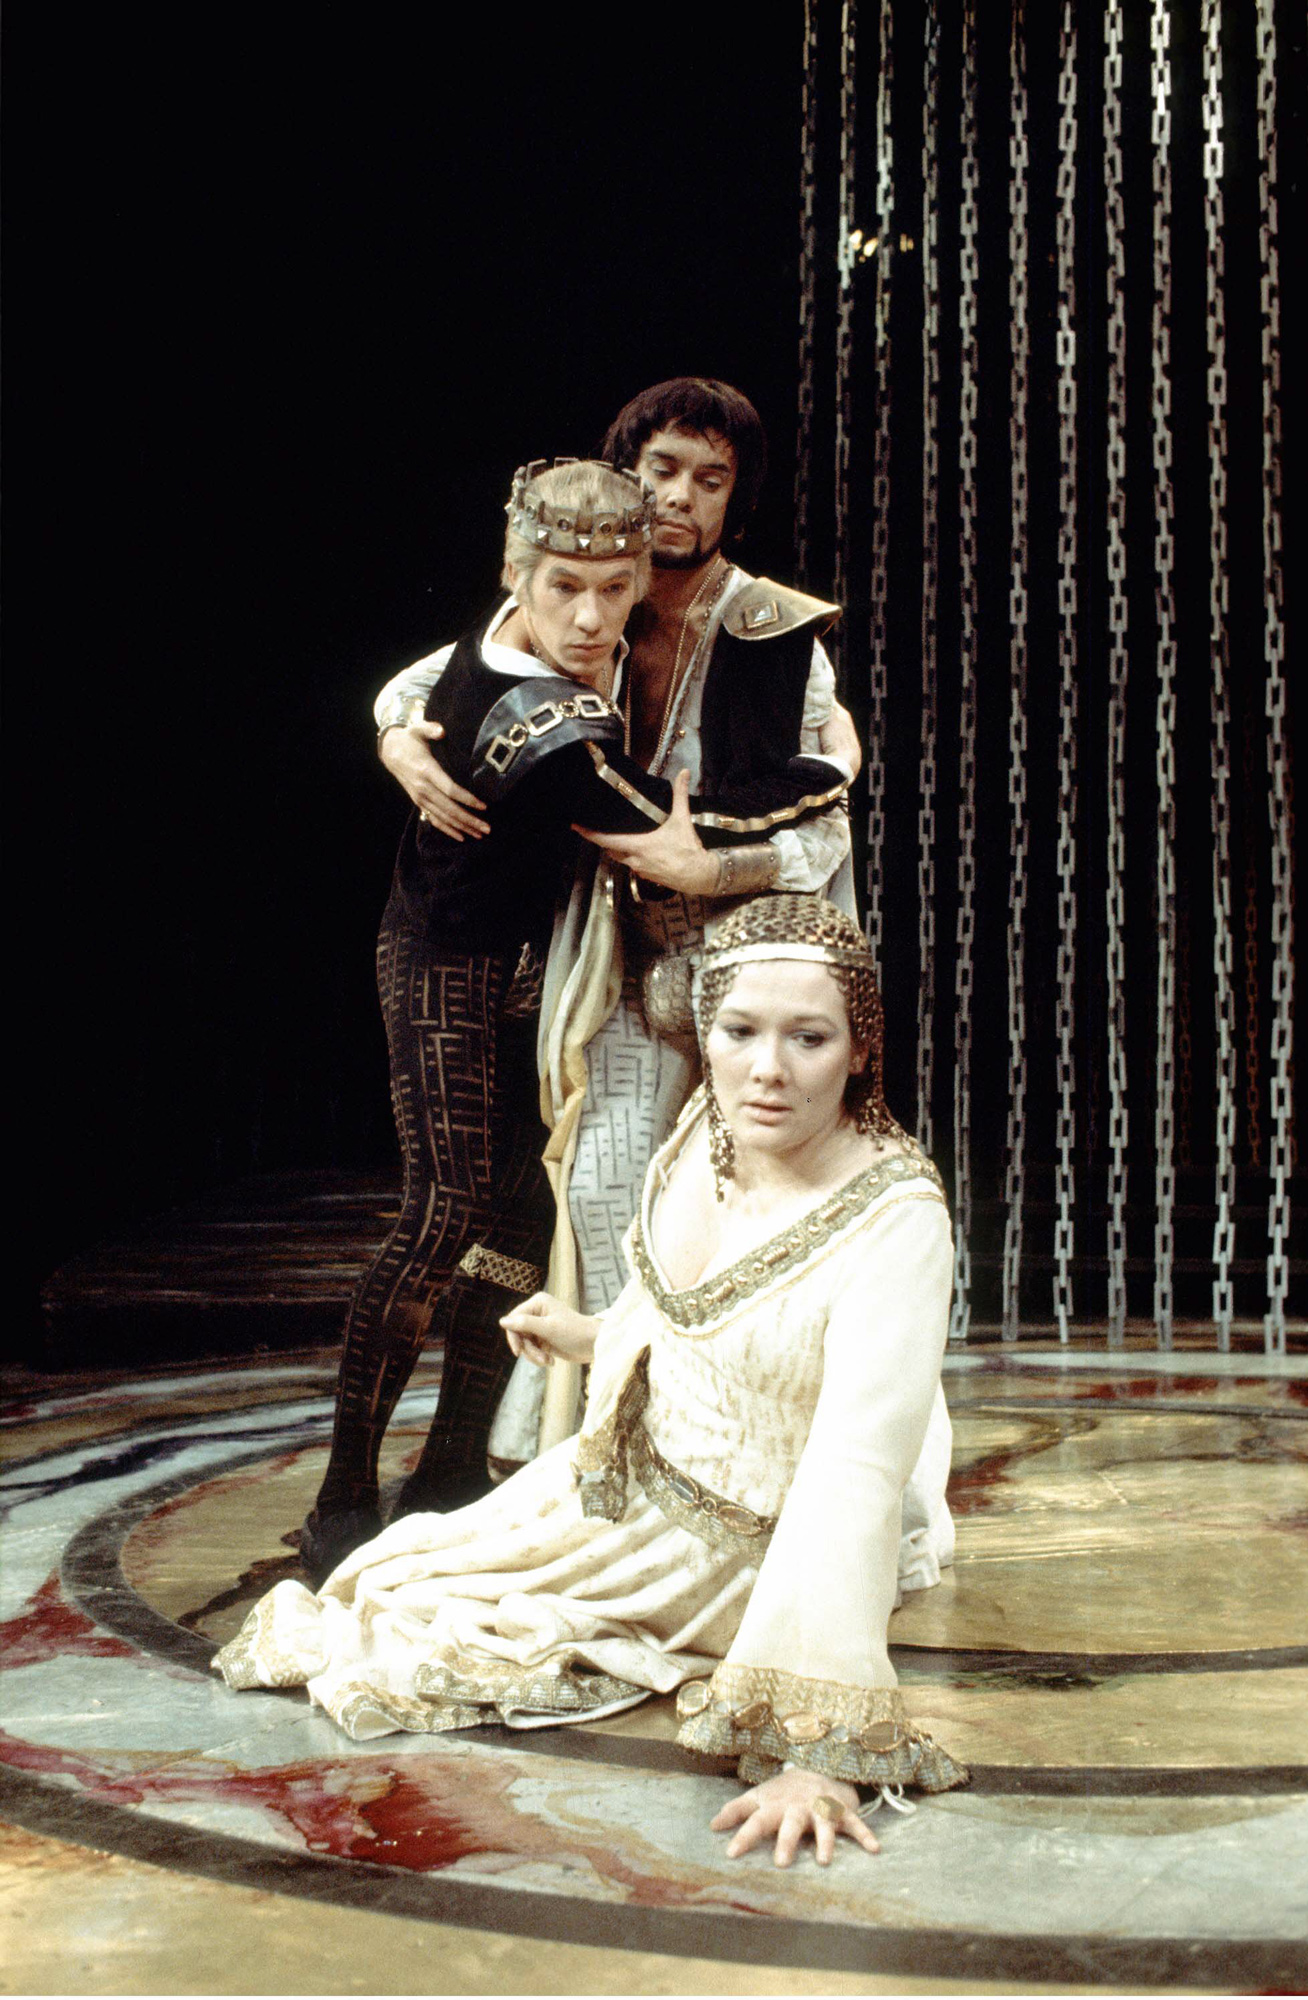 Photograph of Ian McKellen, James Laurenson and Diane Fletcher in Marlowe's Edward II, 1970